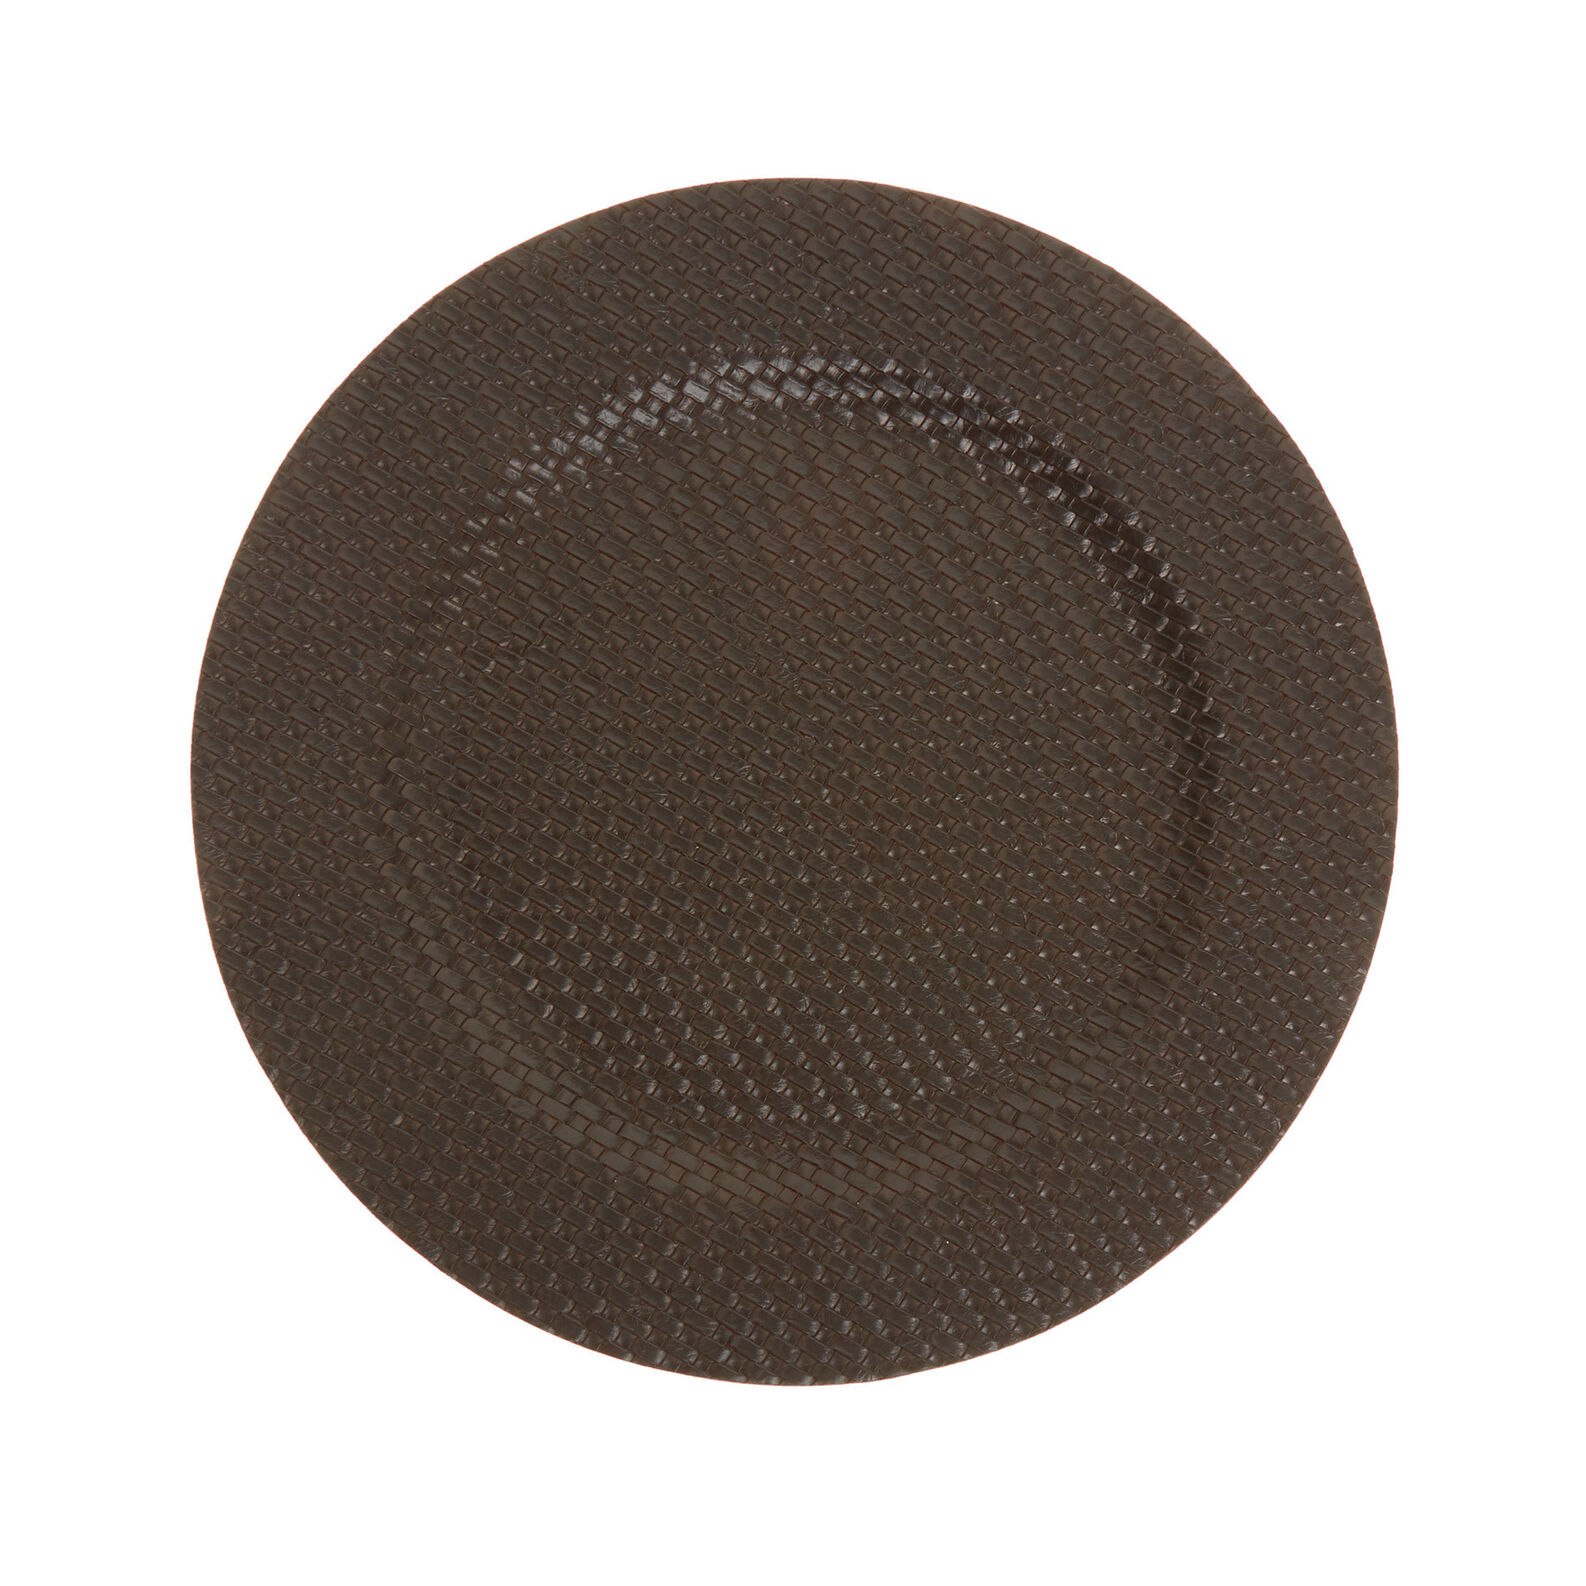 Woven plastic charger plate